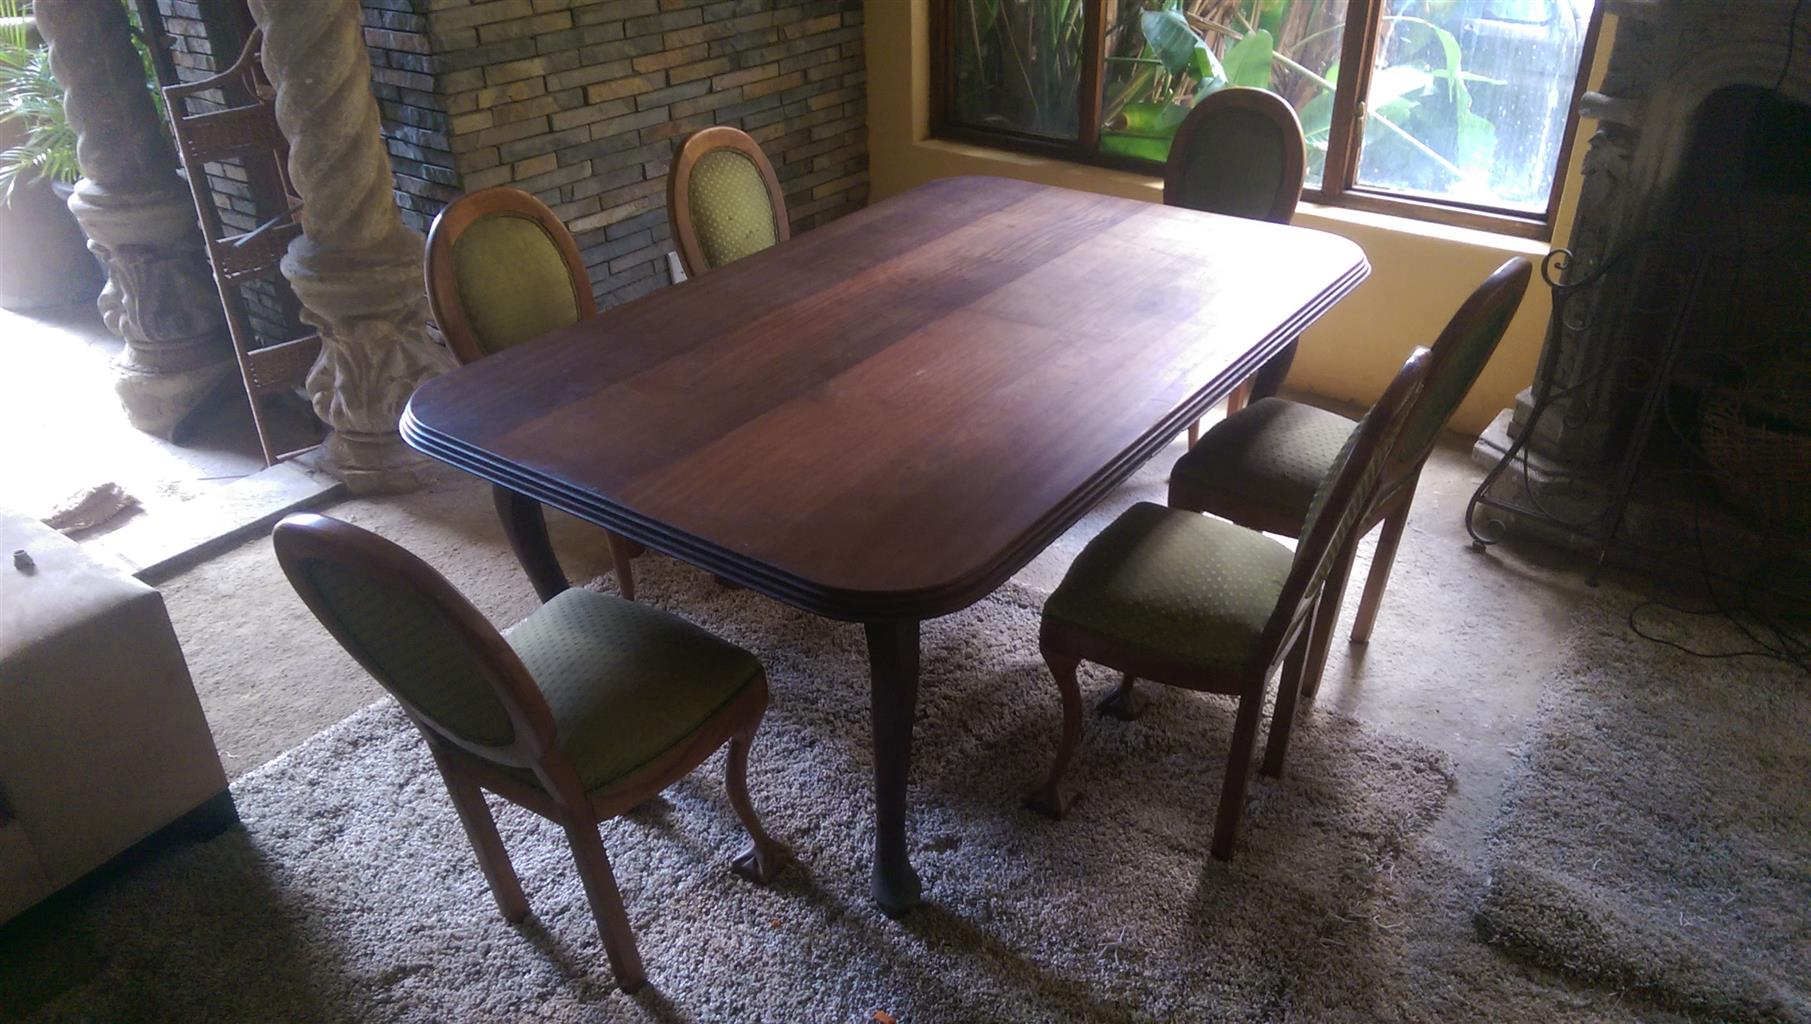 Get Free High Quality HD Wallpapers Dining Room Chairs For Sale Gauteng